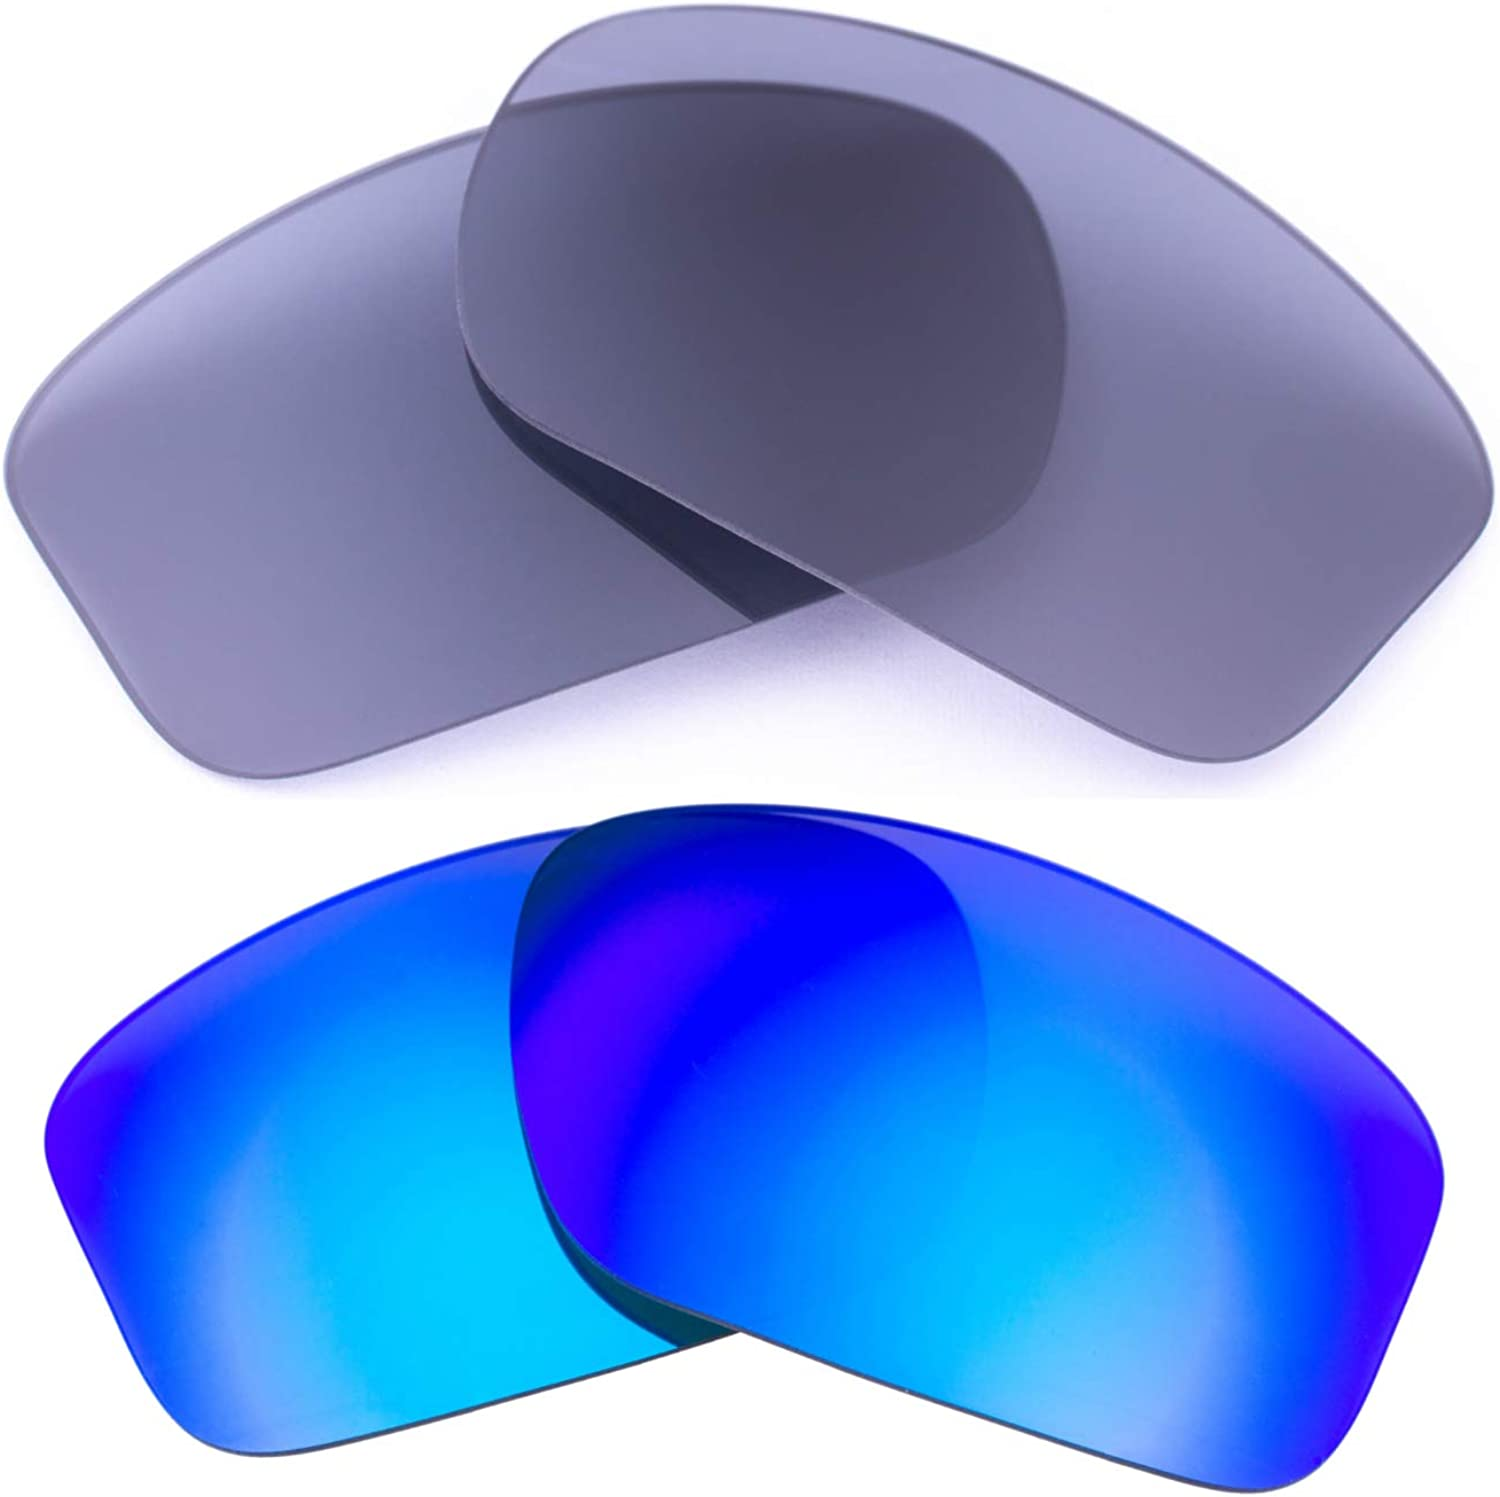 LenzFlip Replacement SALENEW very popular! lenses for Oakley - OO9236 Max 40% OFF Valve sunglasses